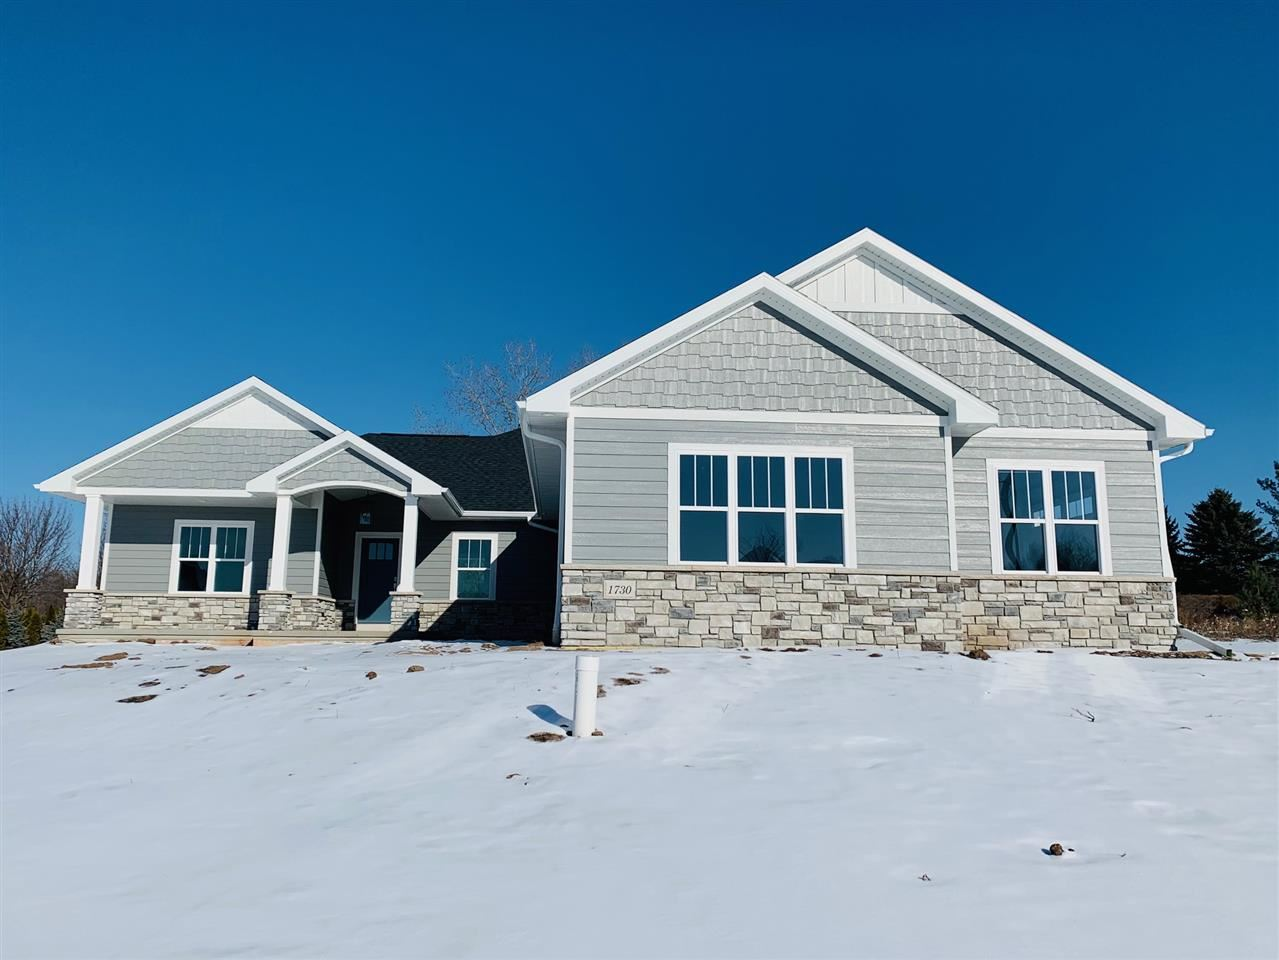 1730 E SONATA Way, Green Bay, WI 54311 - MLS#: 50235026